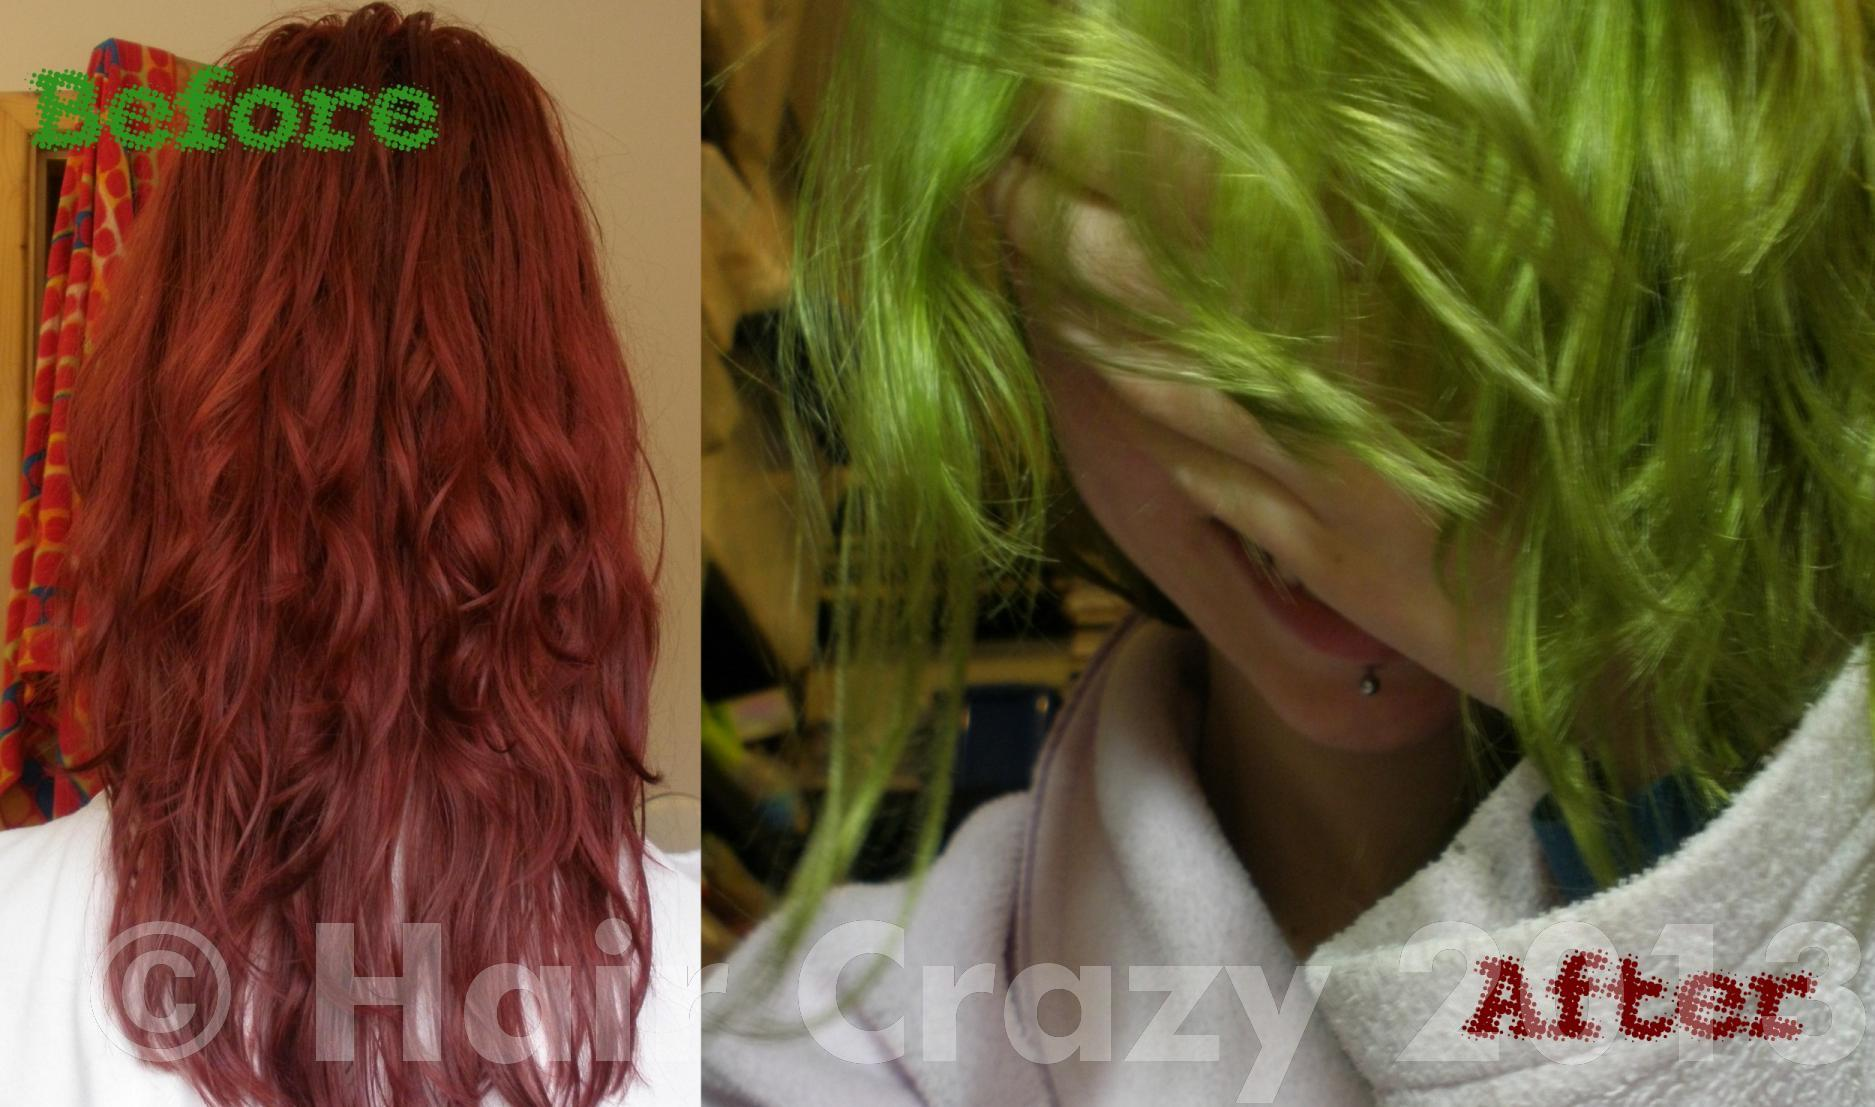 I Used Jobaz Colour Remover And Now Have Acid Green Hair